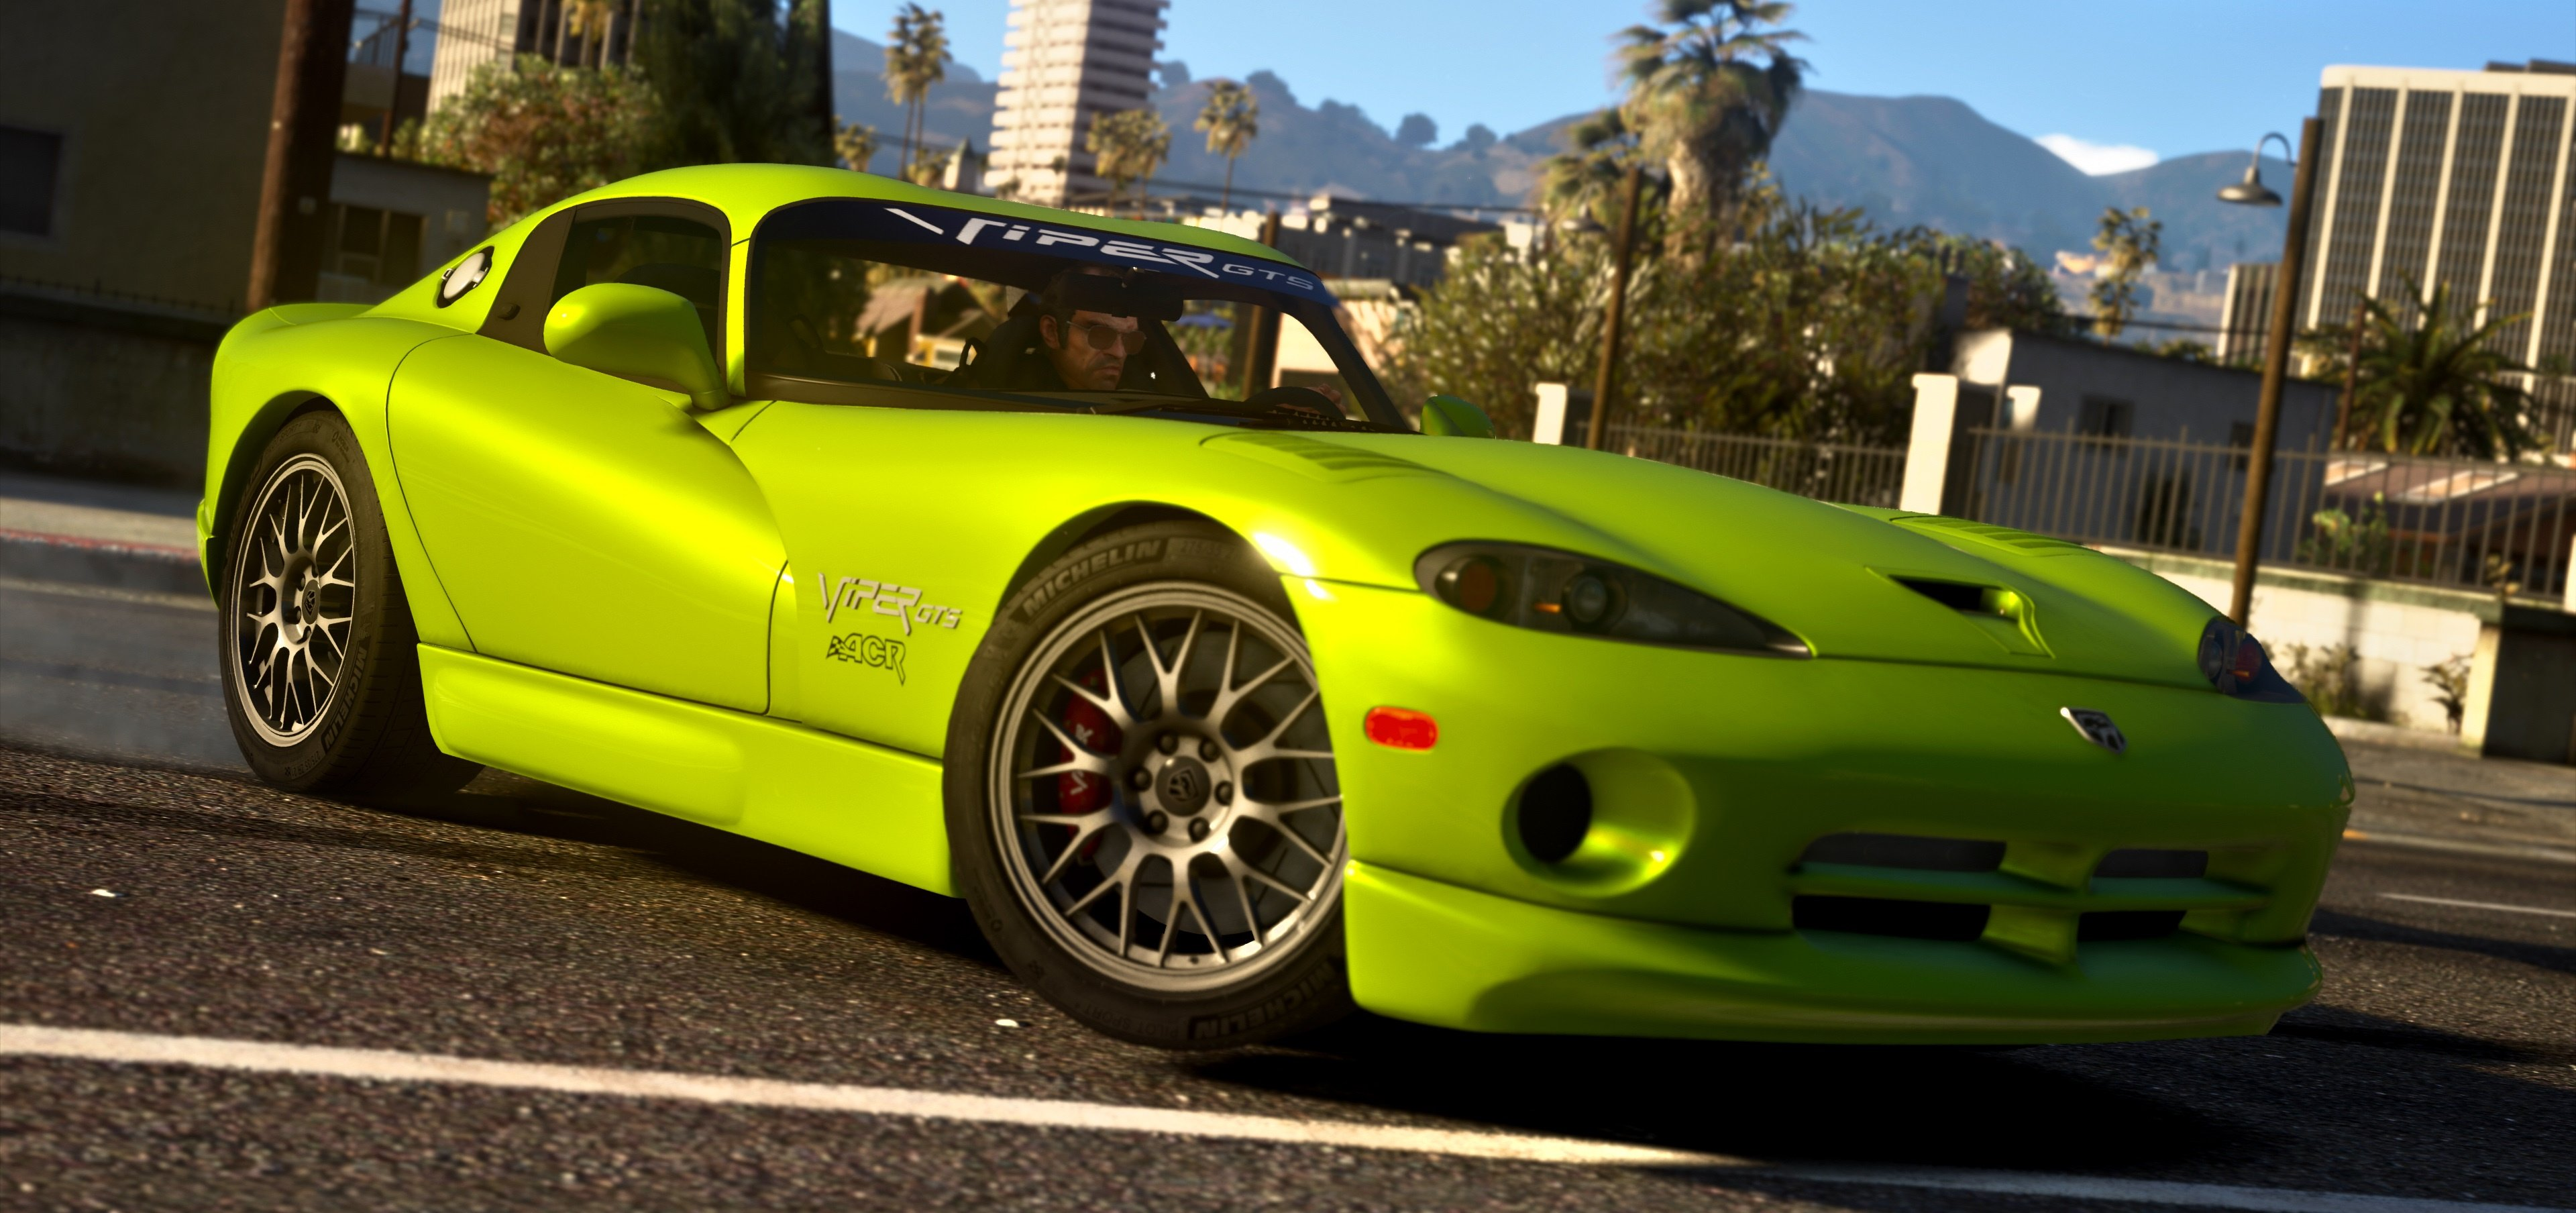 1999 dodge viper gts acr add on replace tuning template gta5. Black Bedroom Furniture Sets. Home Design Ideas